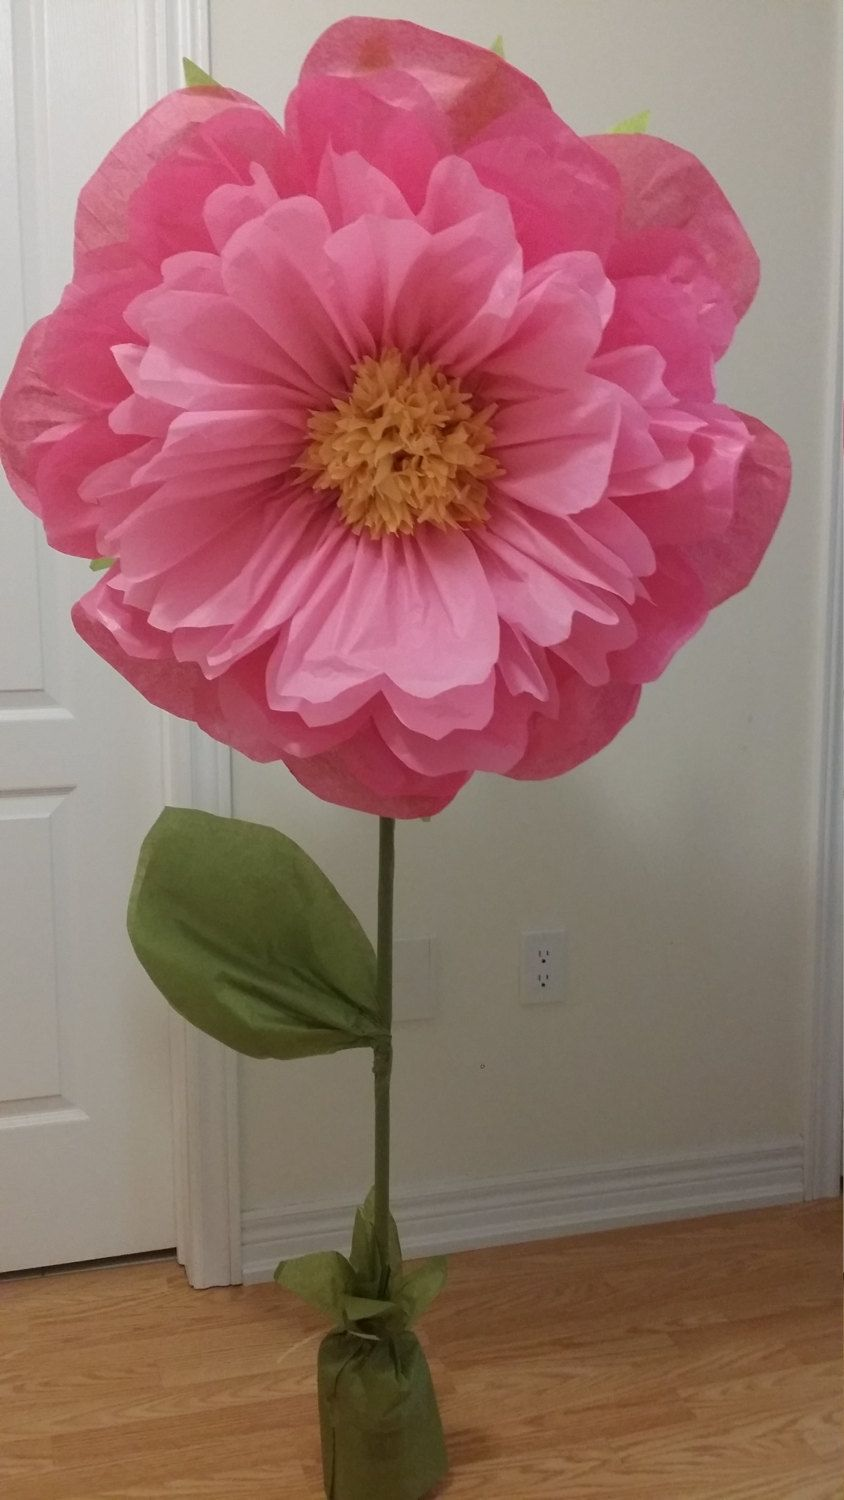 Giant Standing Paper Flowers 30 To 15 Tissue Paper Pom Pom